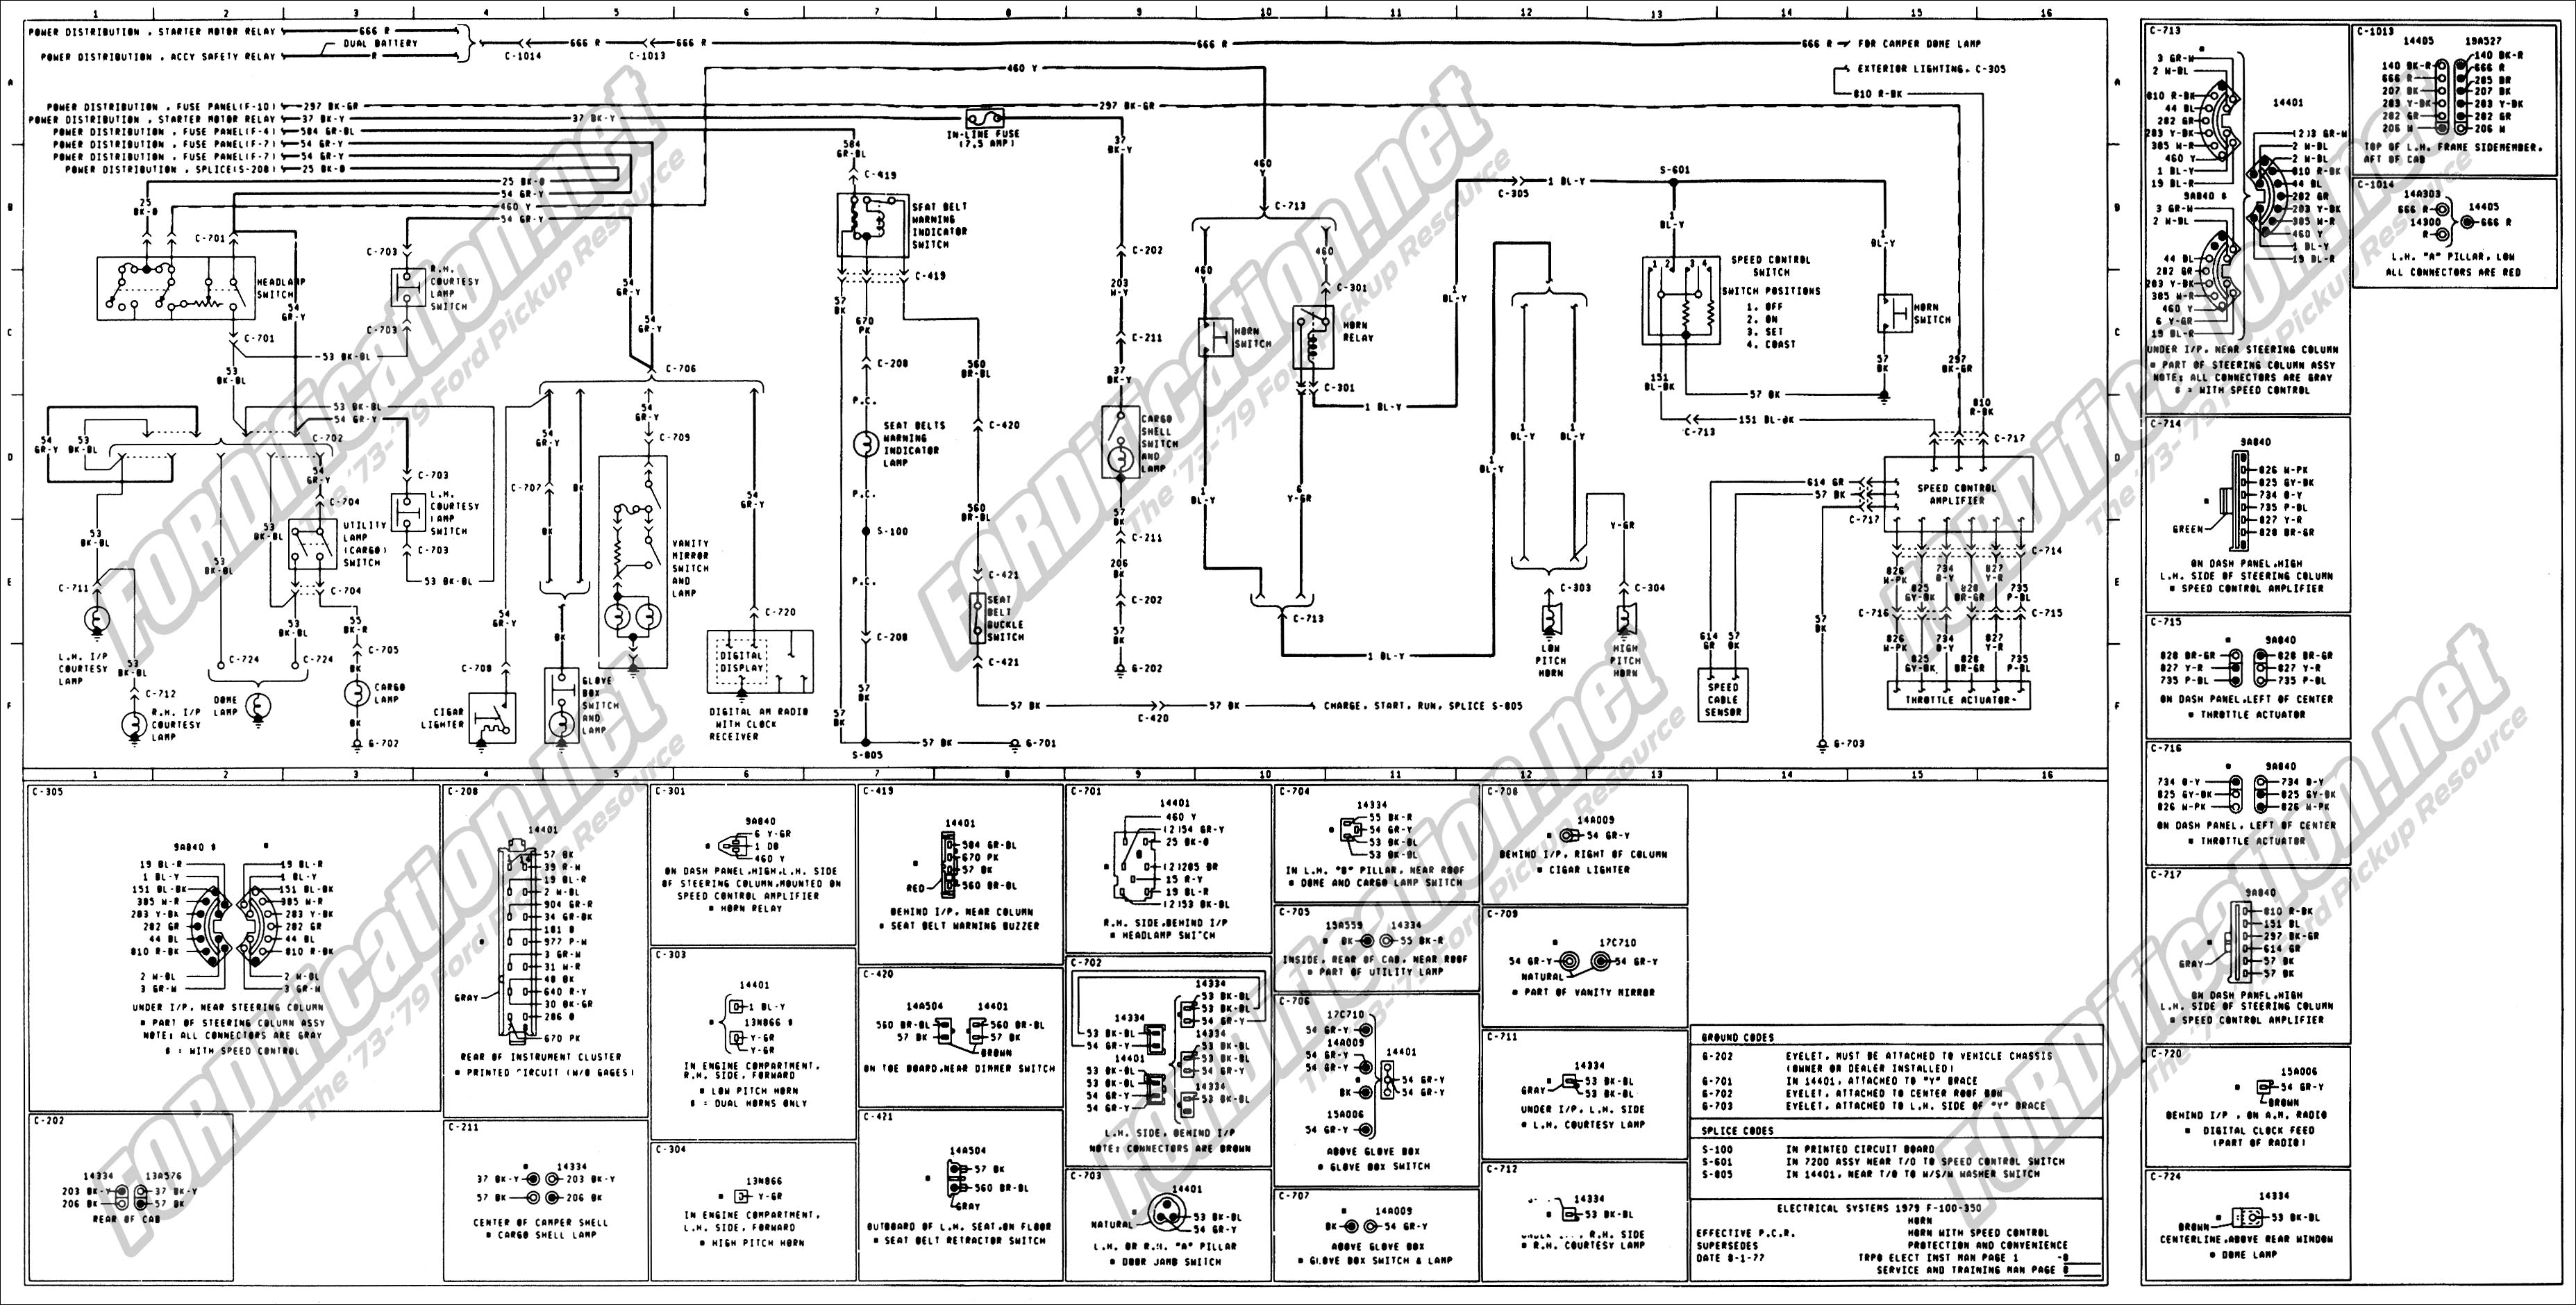 1973 1979 ford truck wiring diagrams schematics fordification net rh  fordification net 1991 Ford F 350 Wiring Diagrams 2004 Ford F350 Wiring  Diagram